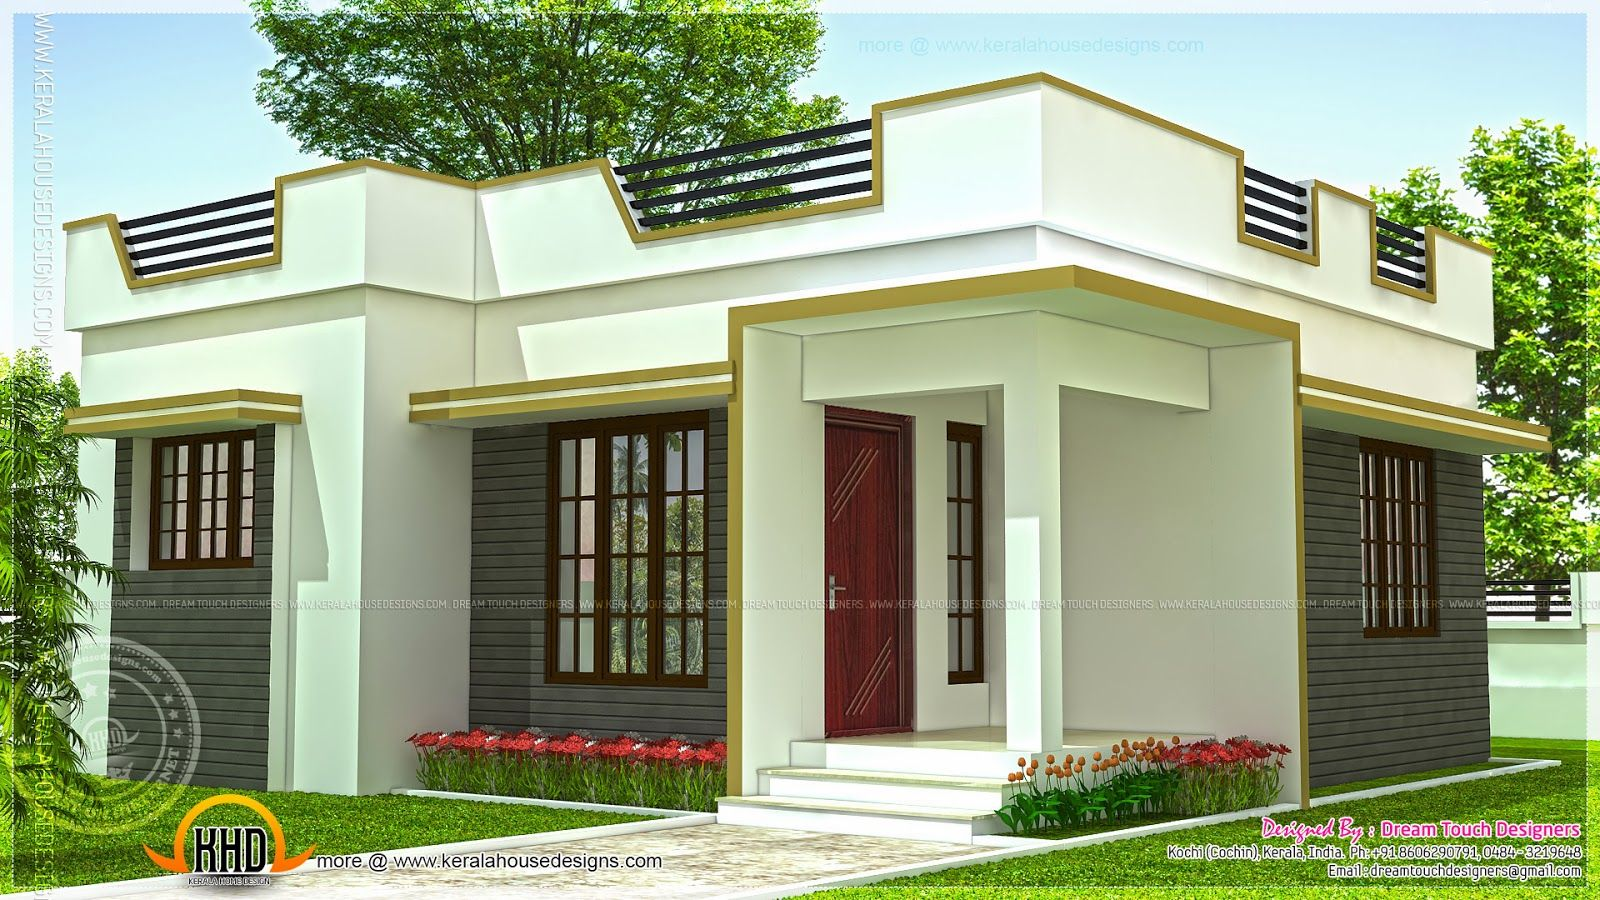 Lately 21 small house design kerala small house for Small house plans modern design